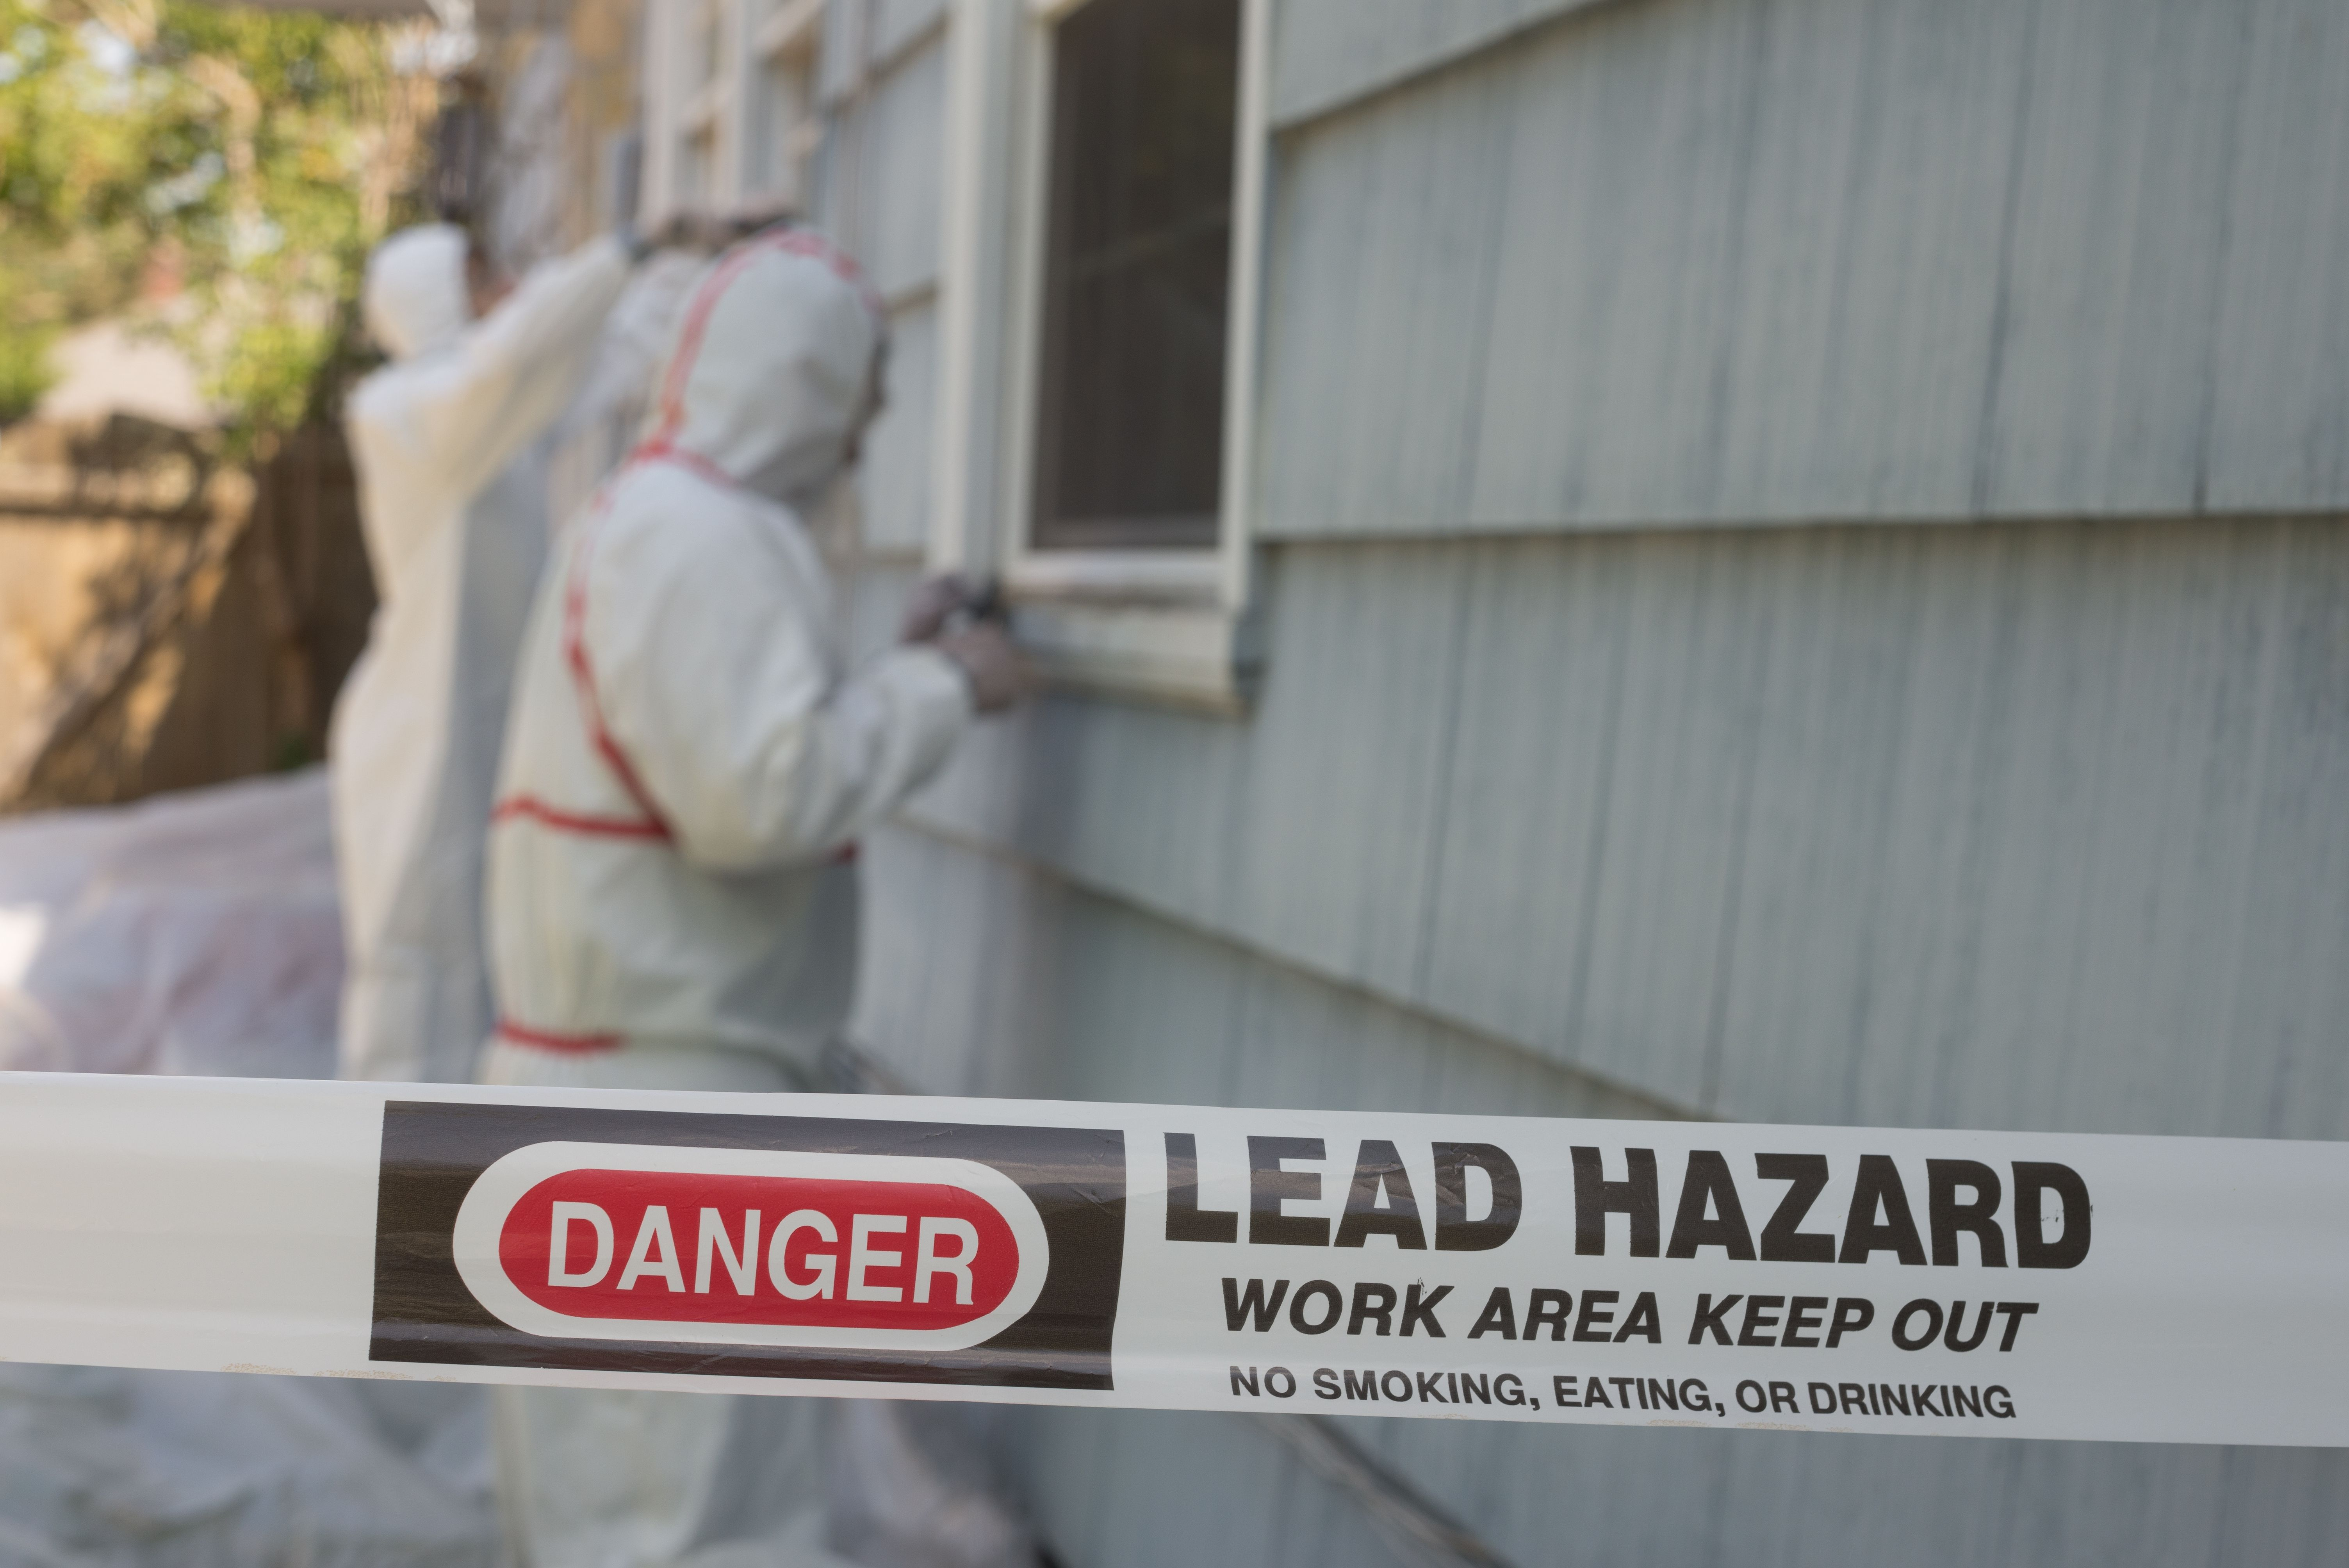 New York City Housing Has Been Rocked By A Scandal Involving Lead Paint The New York City Housing Authority Failed To D Heart Disease Health Risks Heavy Metal